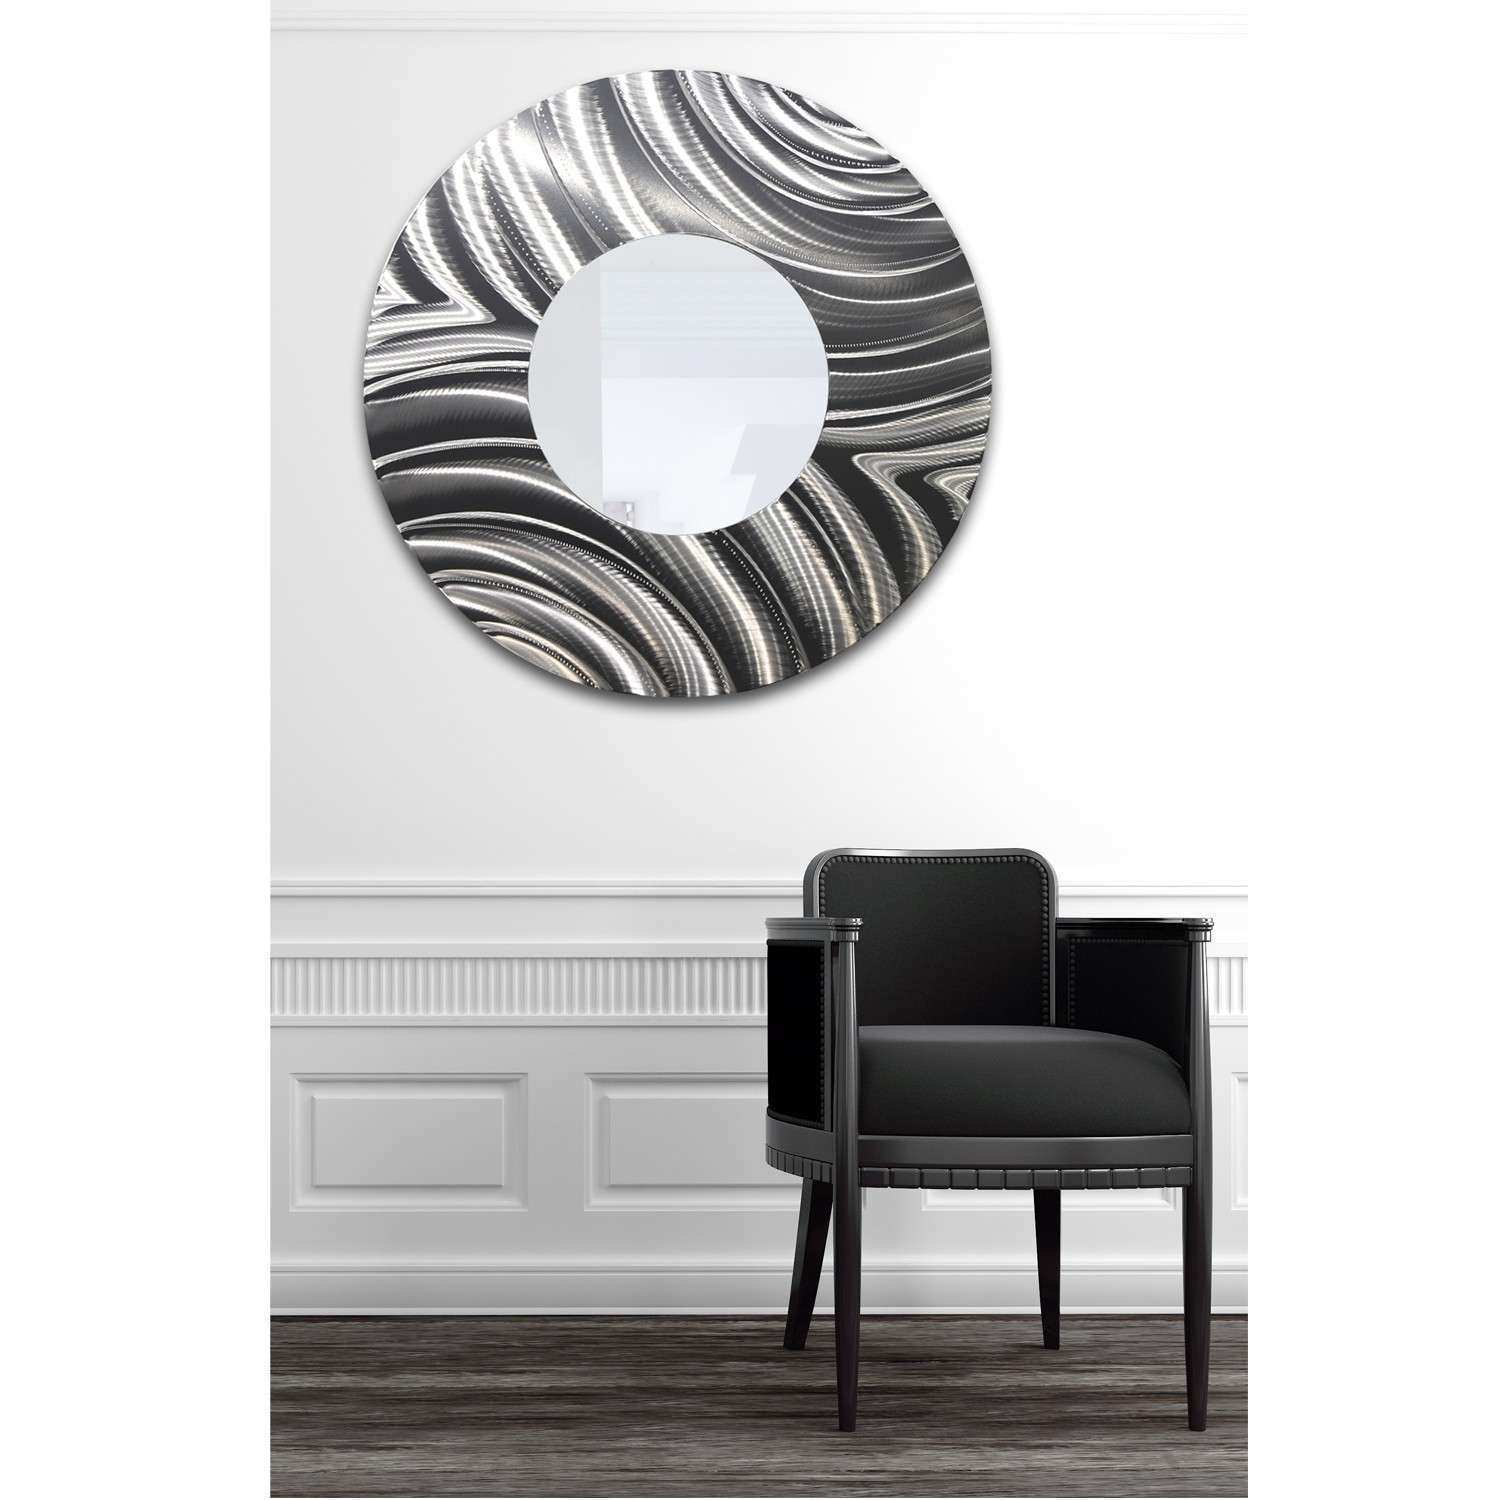 Mirrror 112 Round Silver Contemporary Metal Wall Art